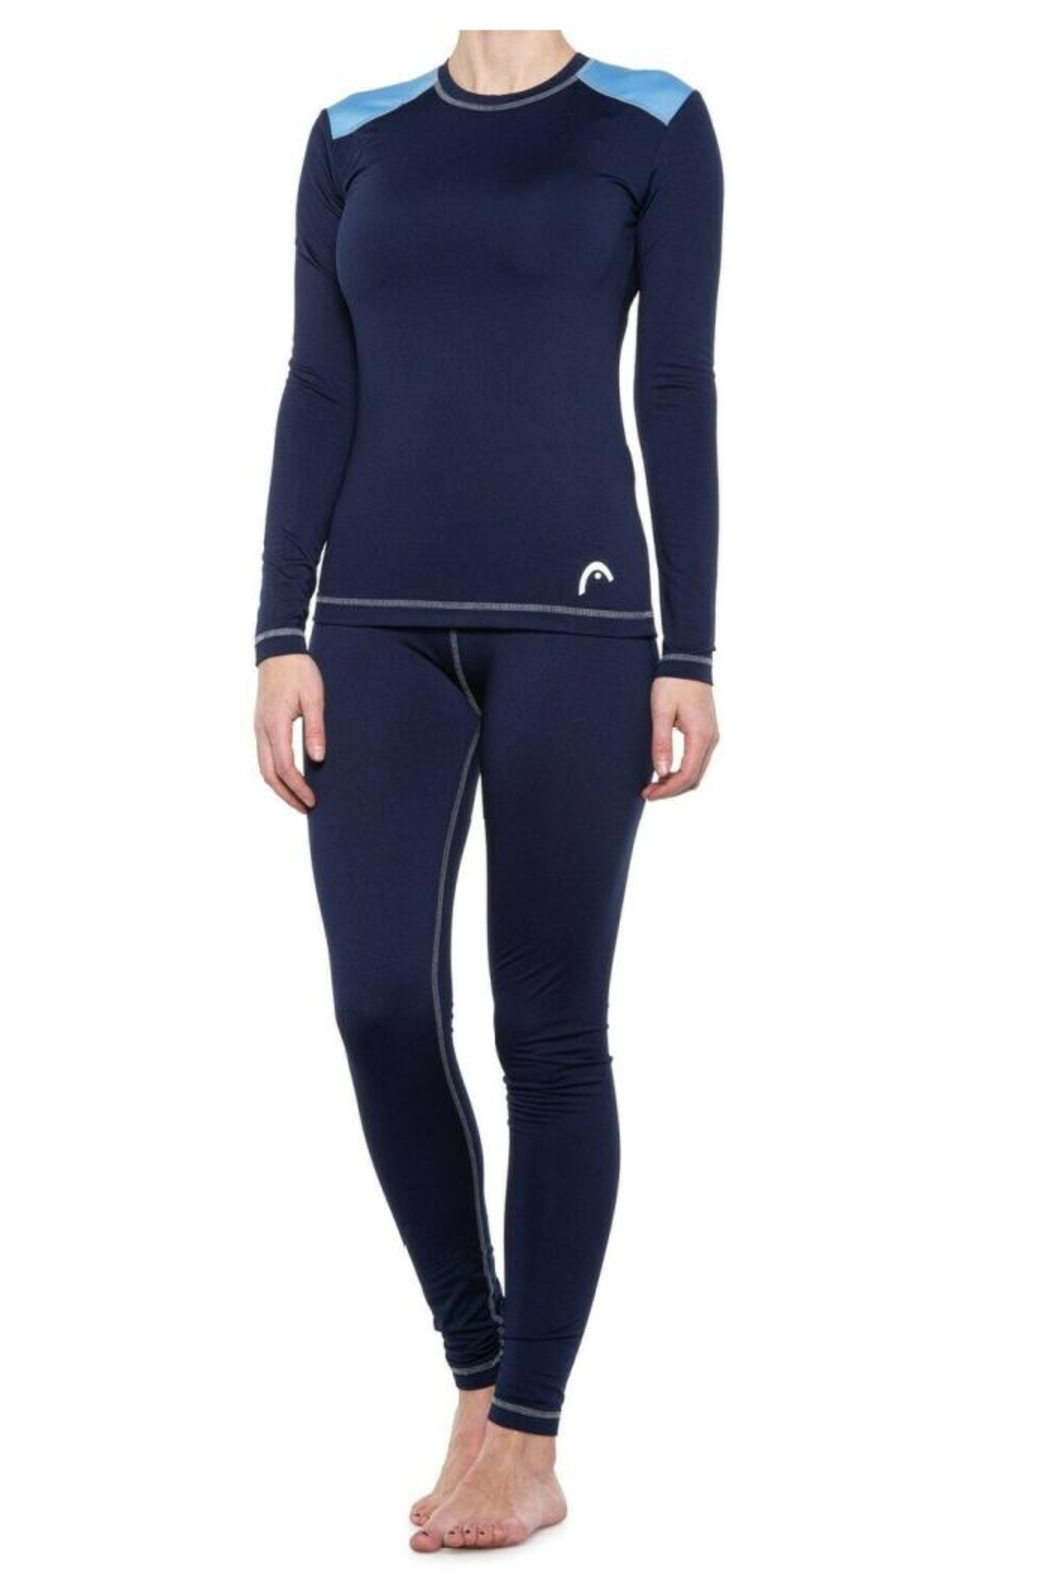 Head Women's Brushed 2 Piece Base Layer Set - Front Cropped Image